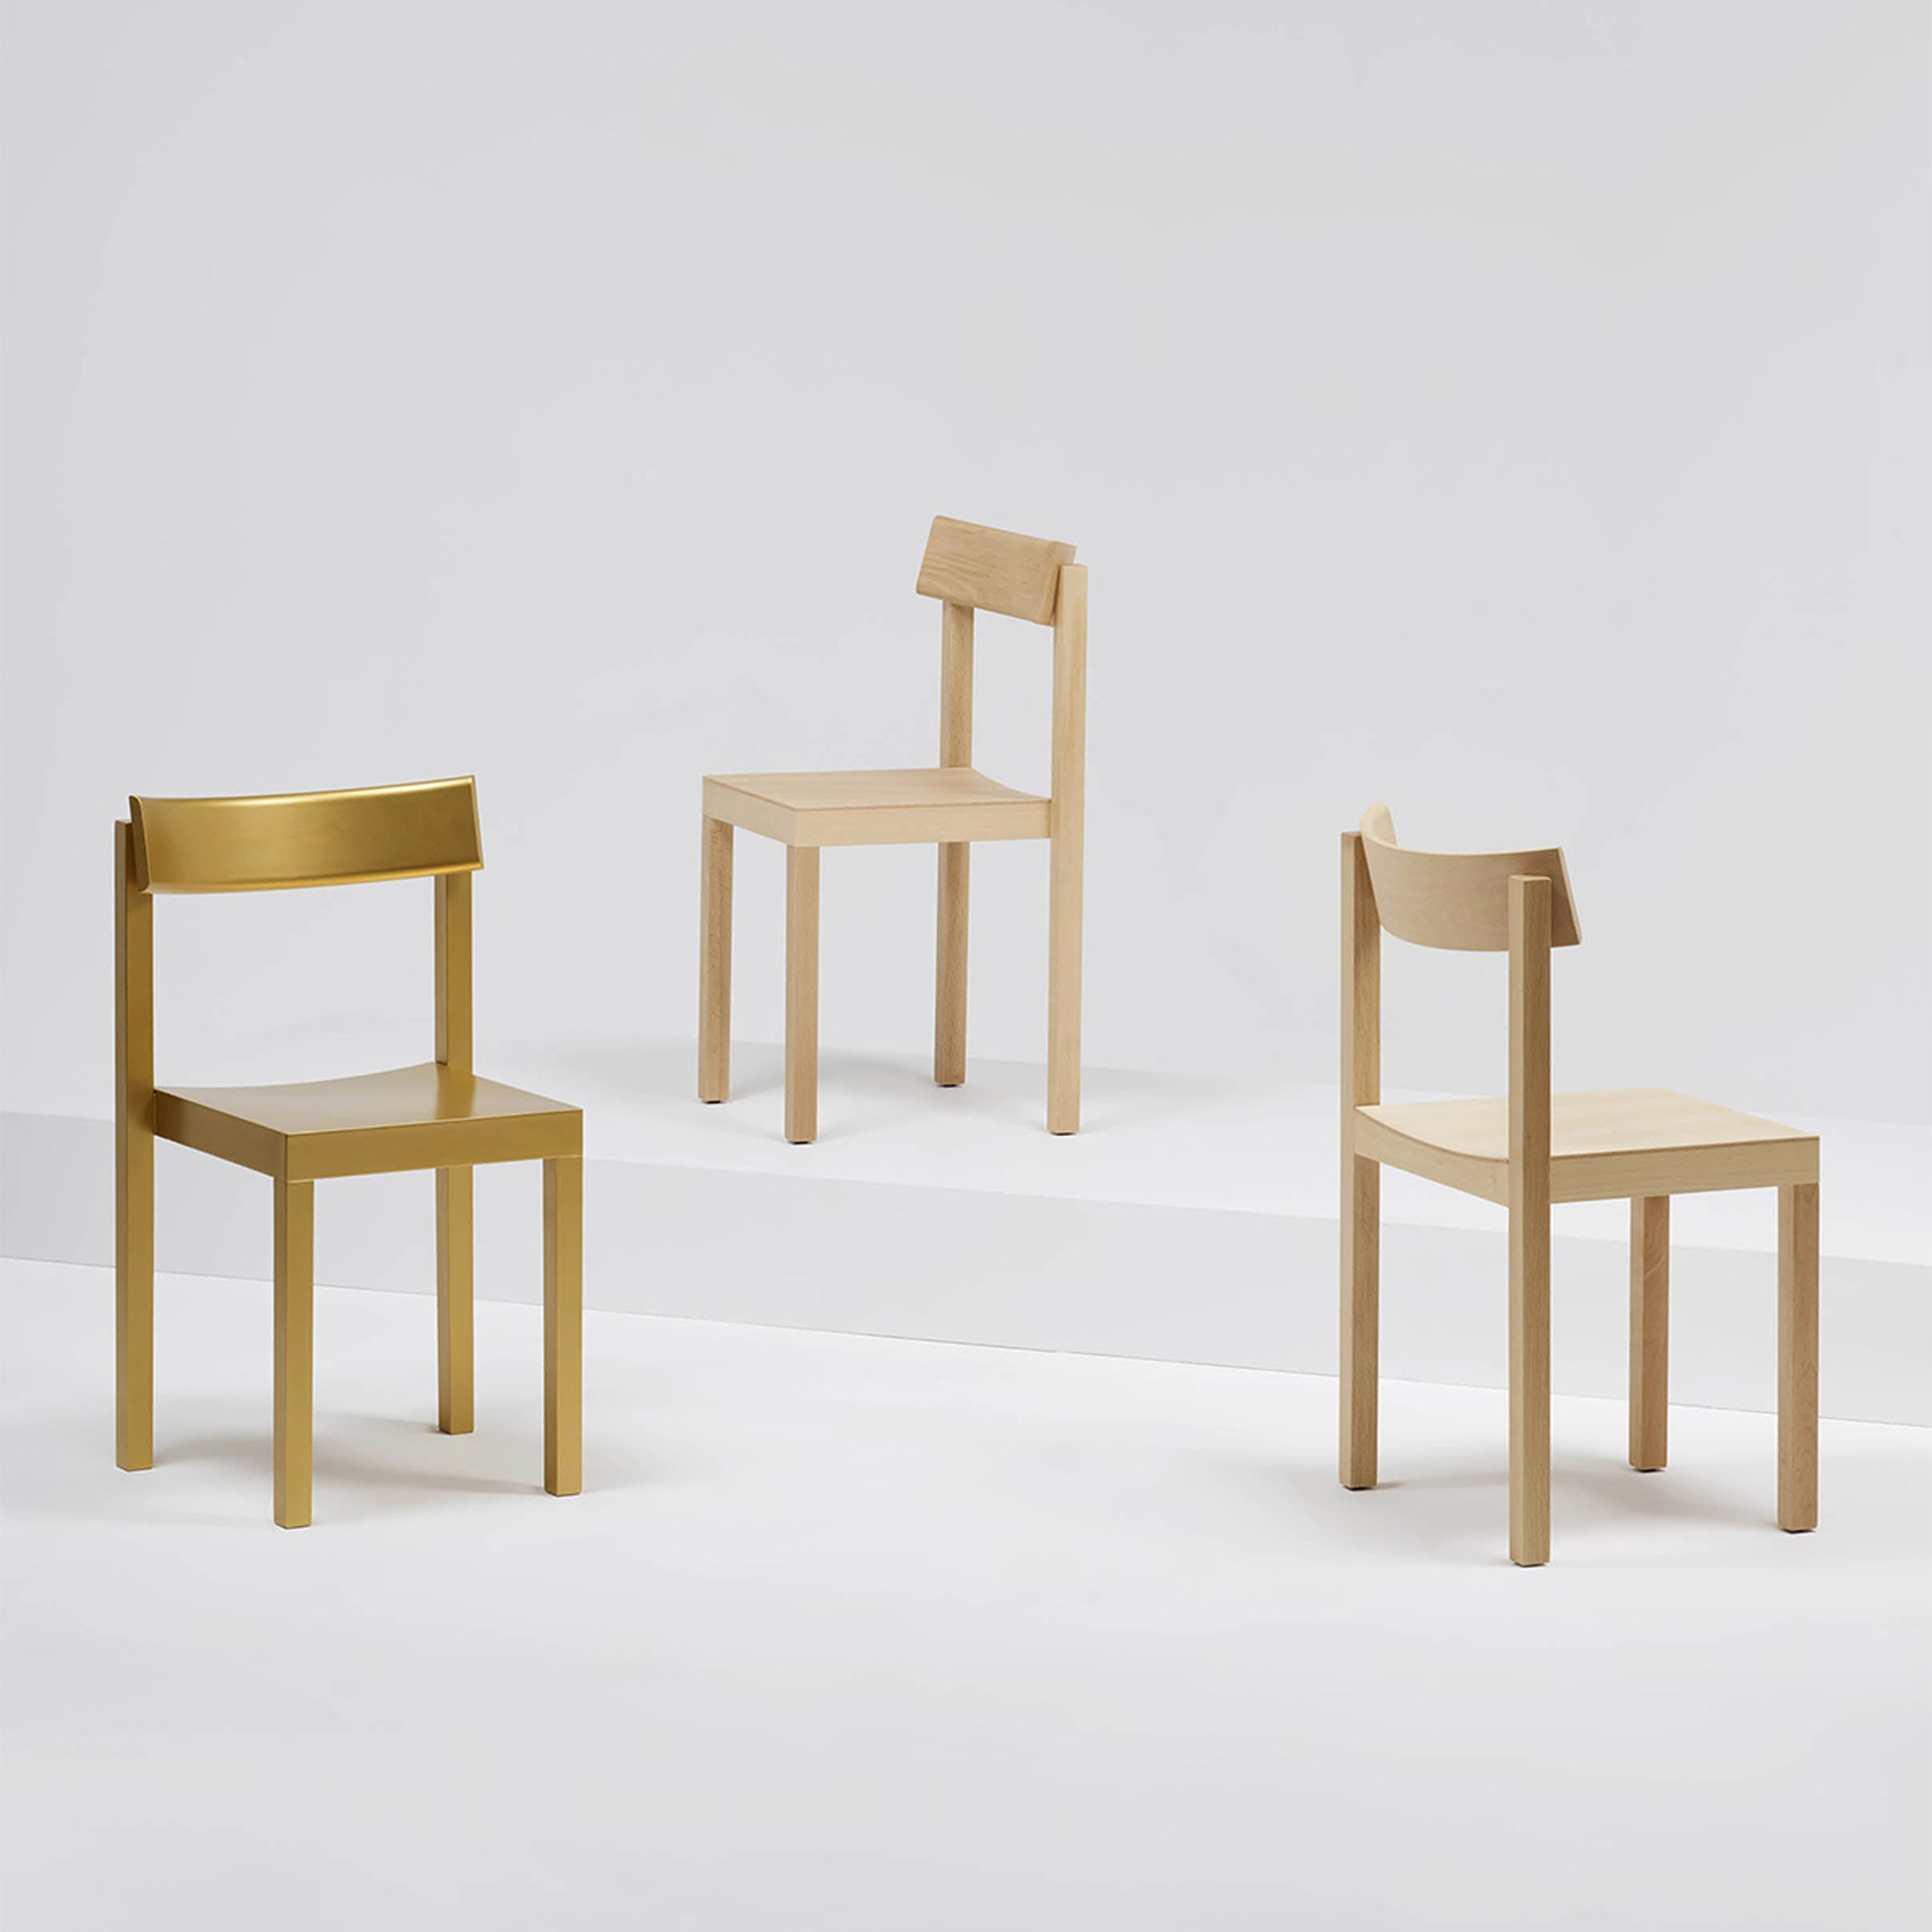 chair design architects potty for big toddler konstantin grcic designs quotstrictly vertical quot primo